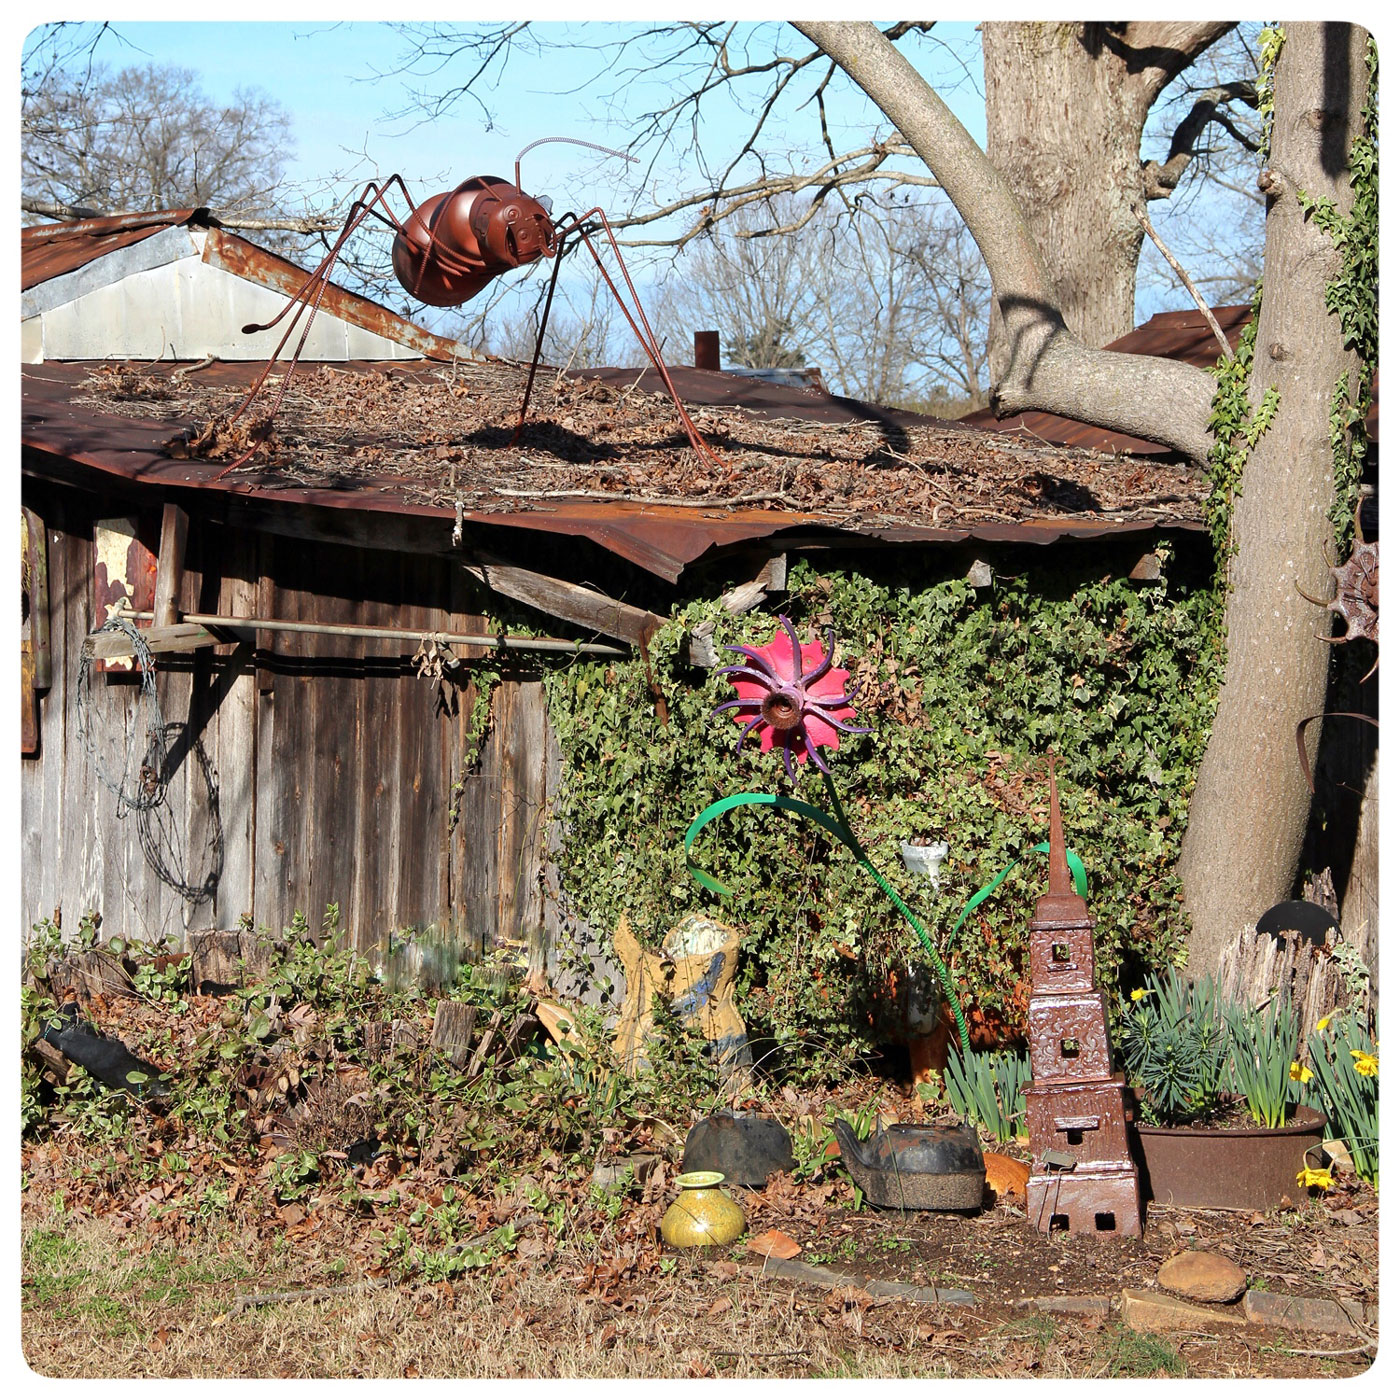 Garden Sculpture at Bulldog Pottery made by mixed media metal artist Mike Durham